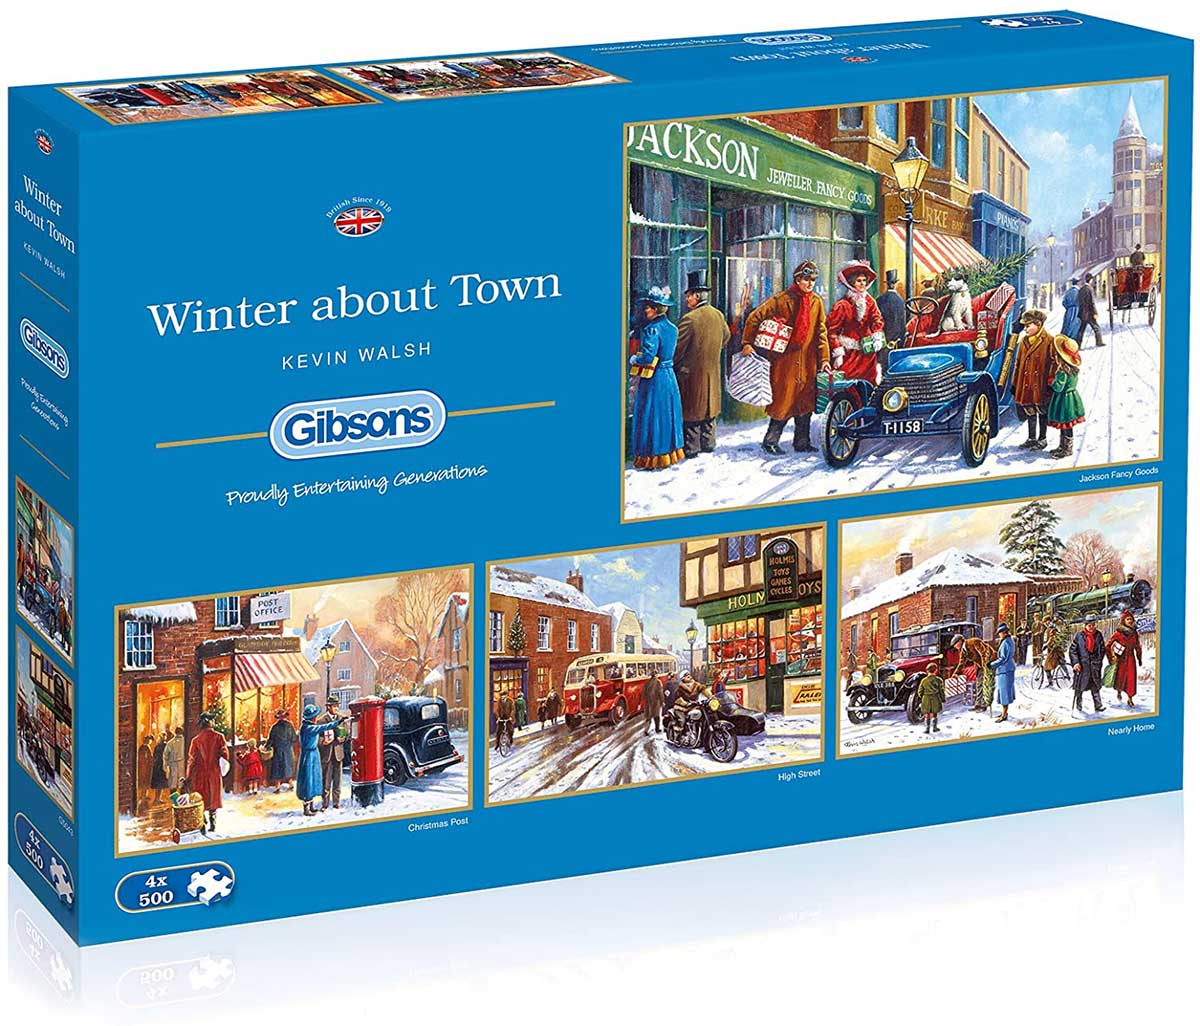 Winter About Town Winter Jigsaw Puzzle